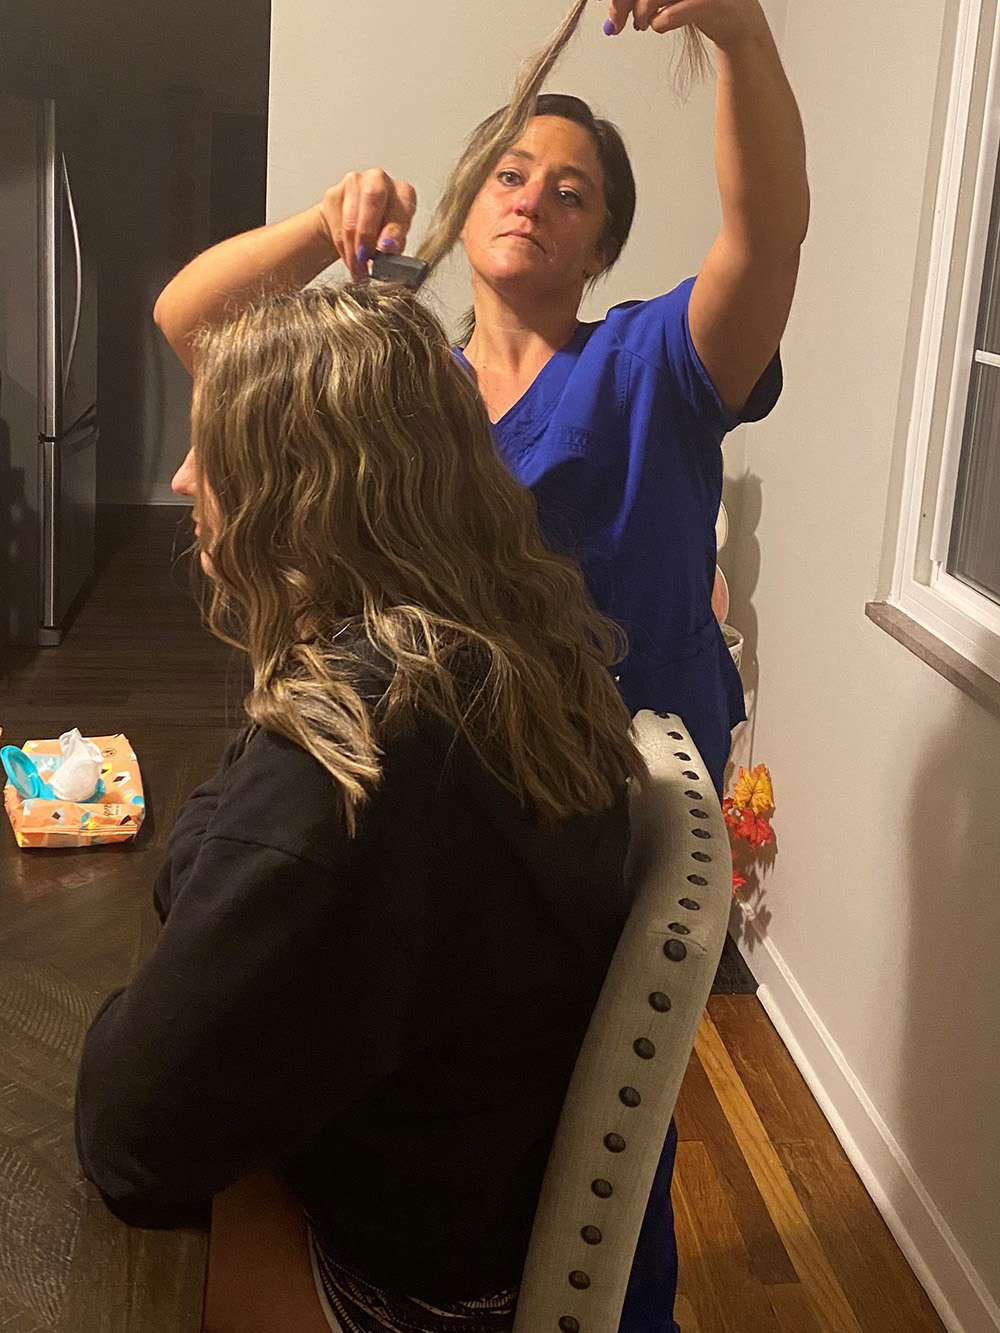 Lice Treatment in Dearborn, MI